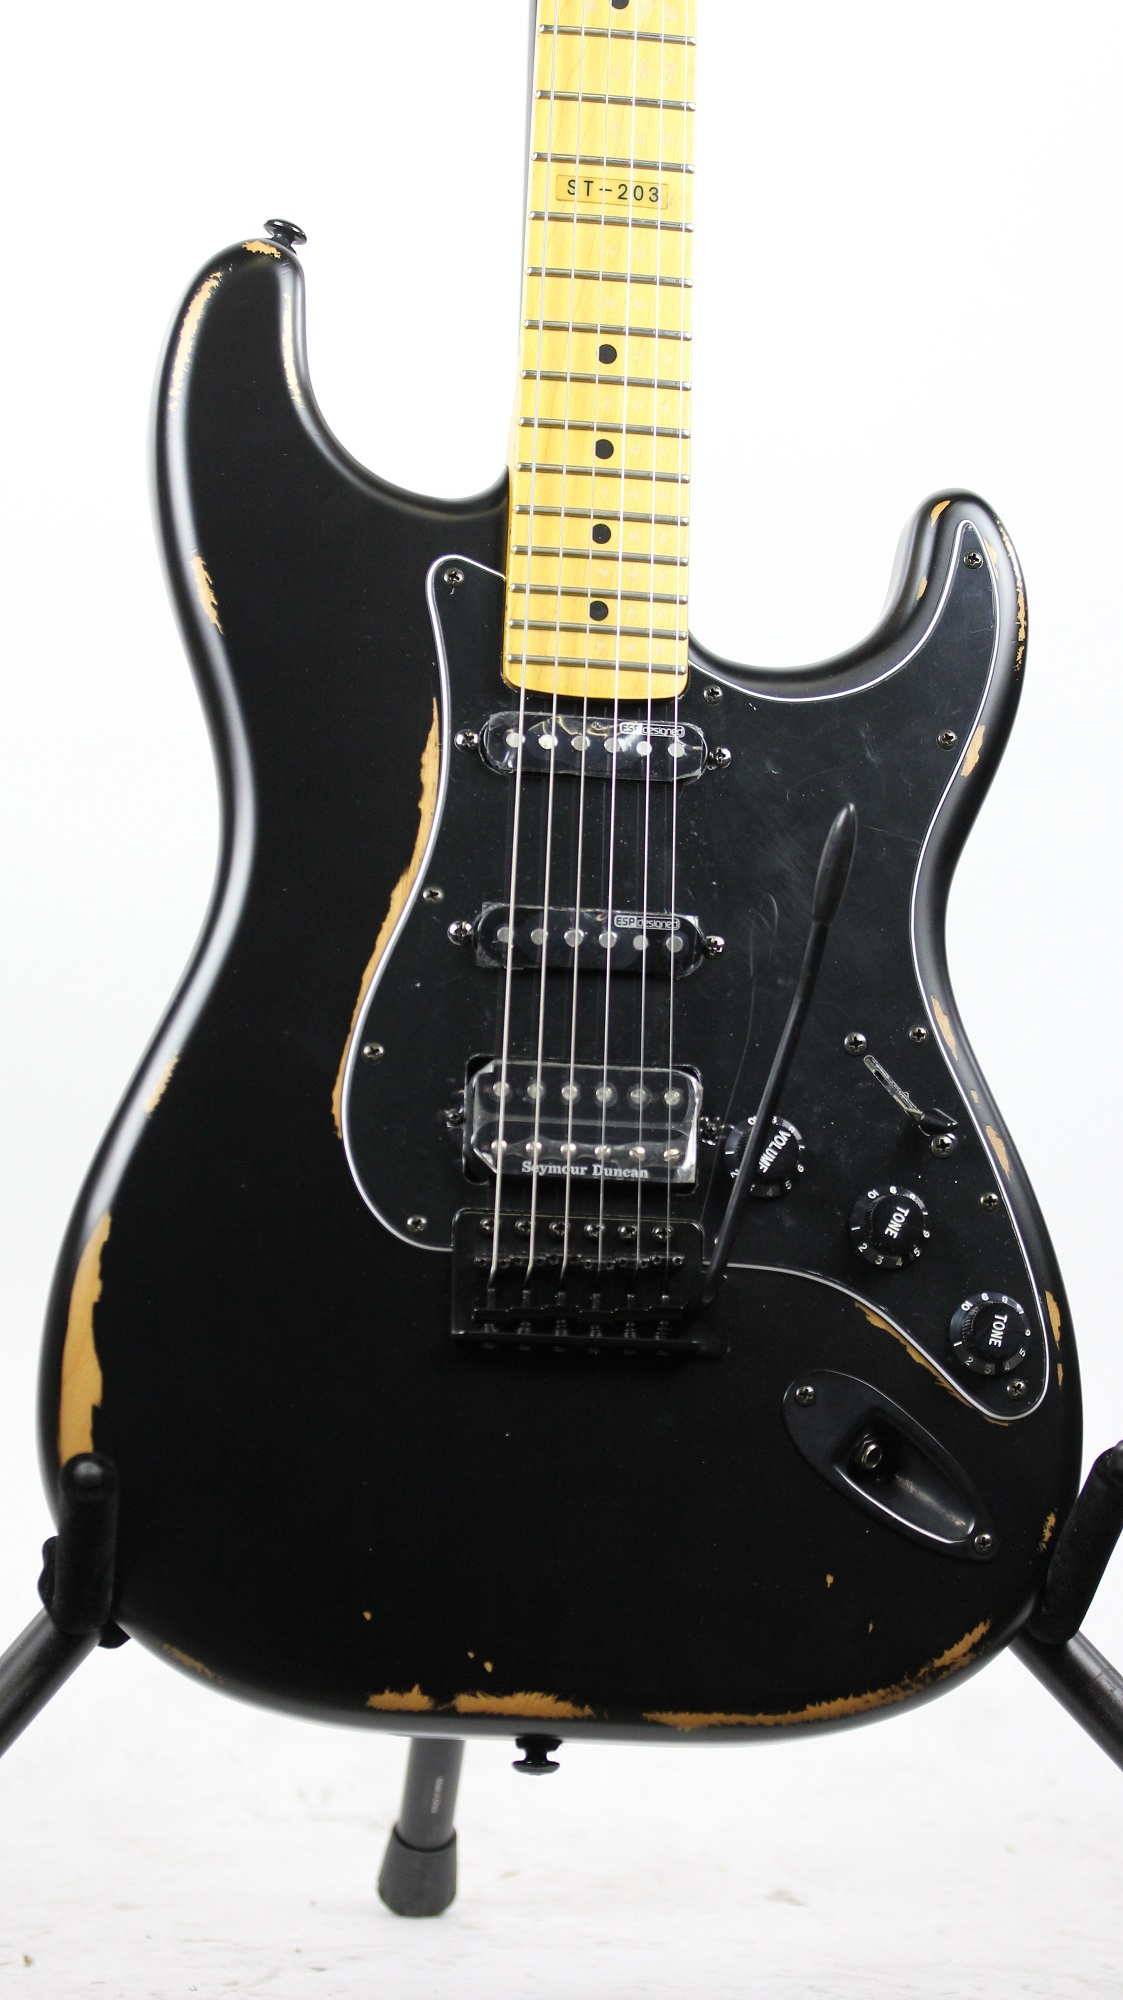 esp ltd st 203 distressed black hss sample prototype electric guitar 6. Black Bedroom Furniture Sets. Home Design Ideas